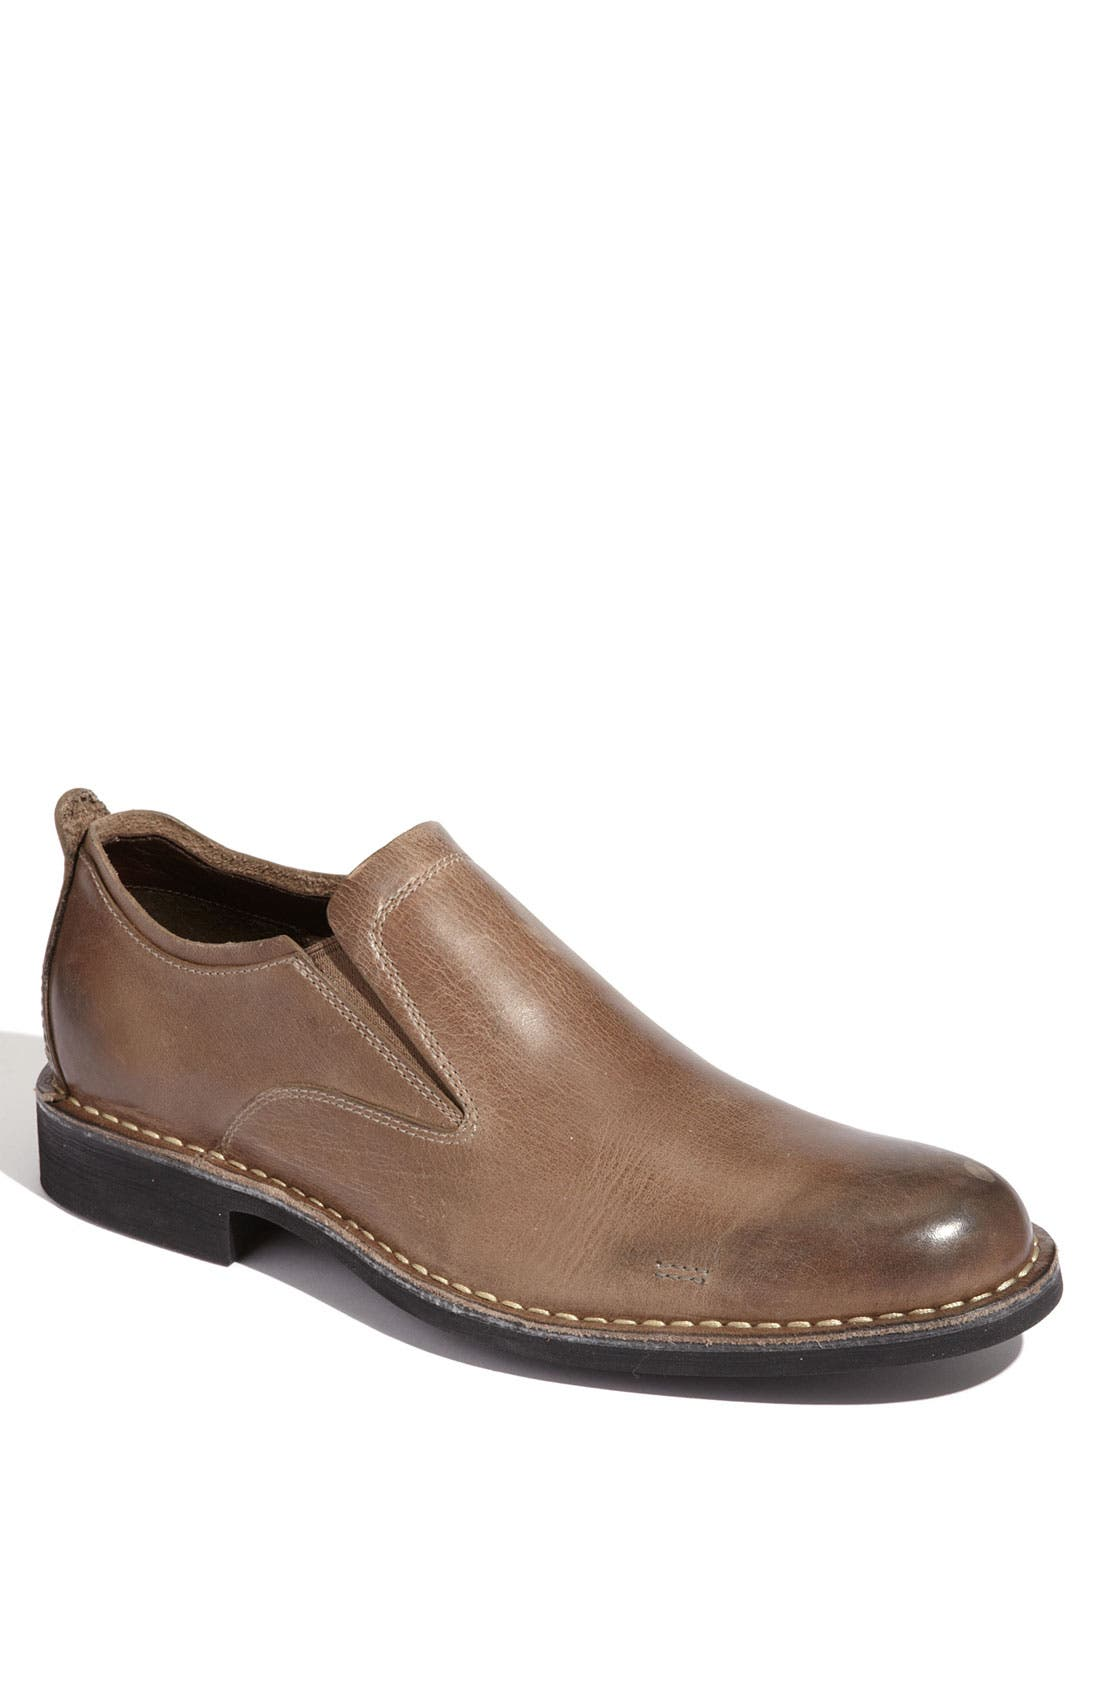 Main Image - Cole Haan 'Air Blythe' Loafer